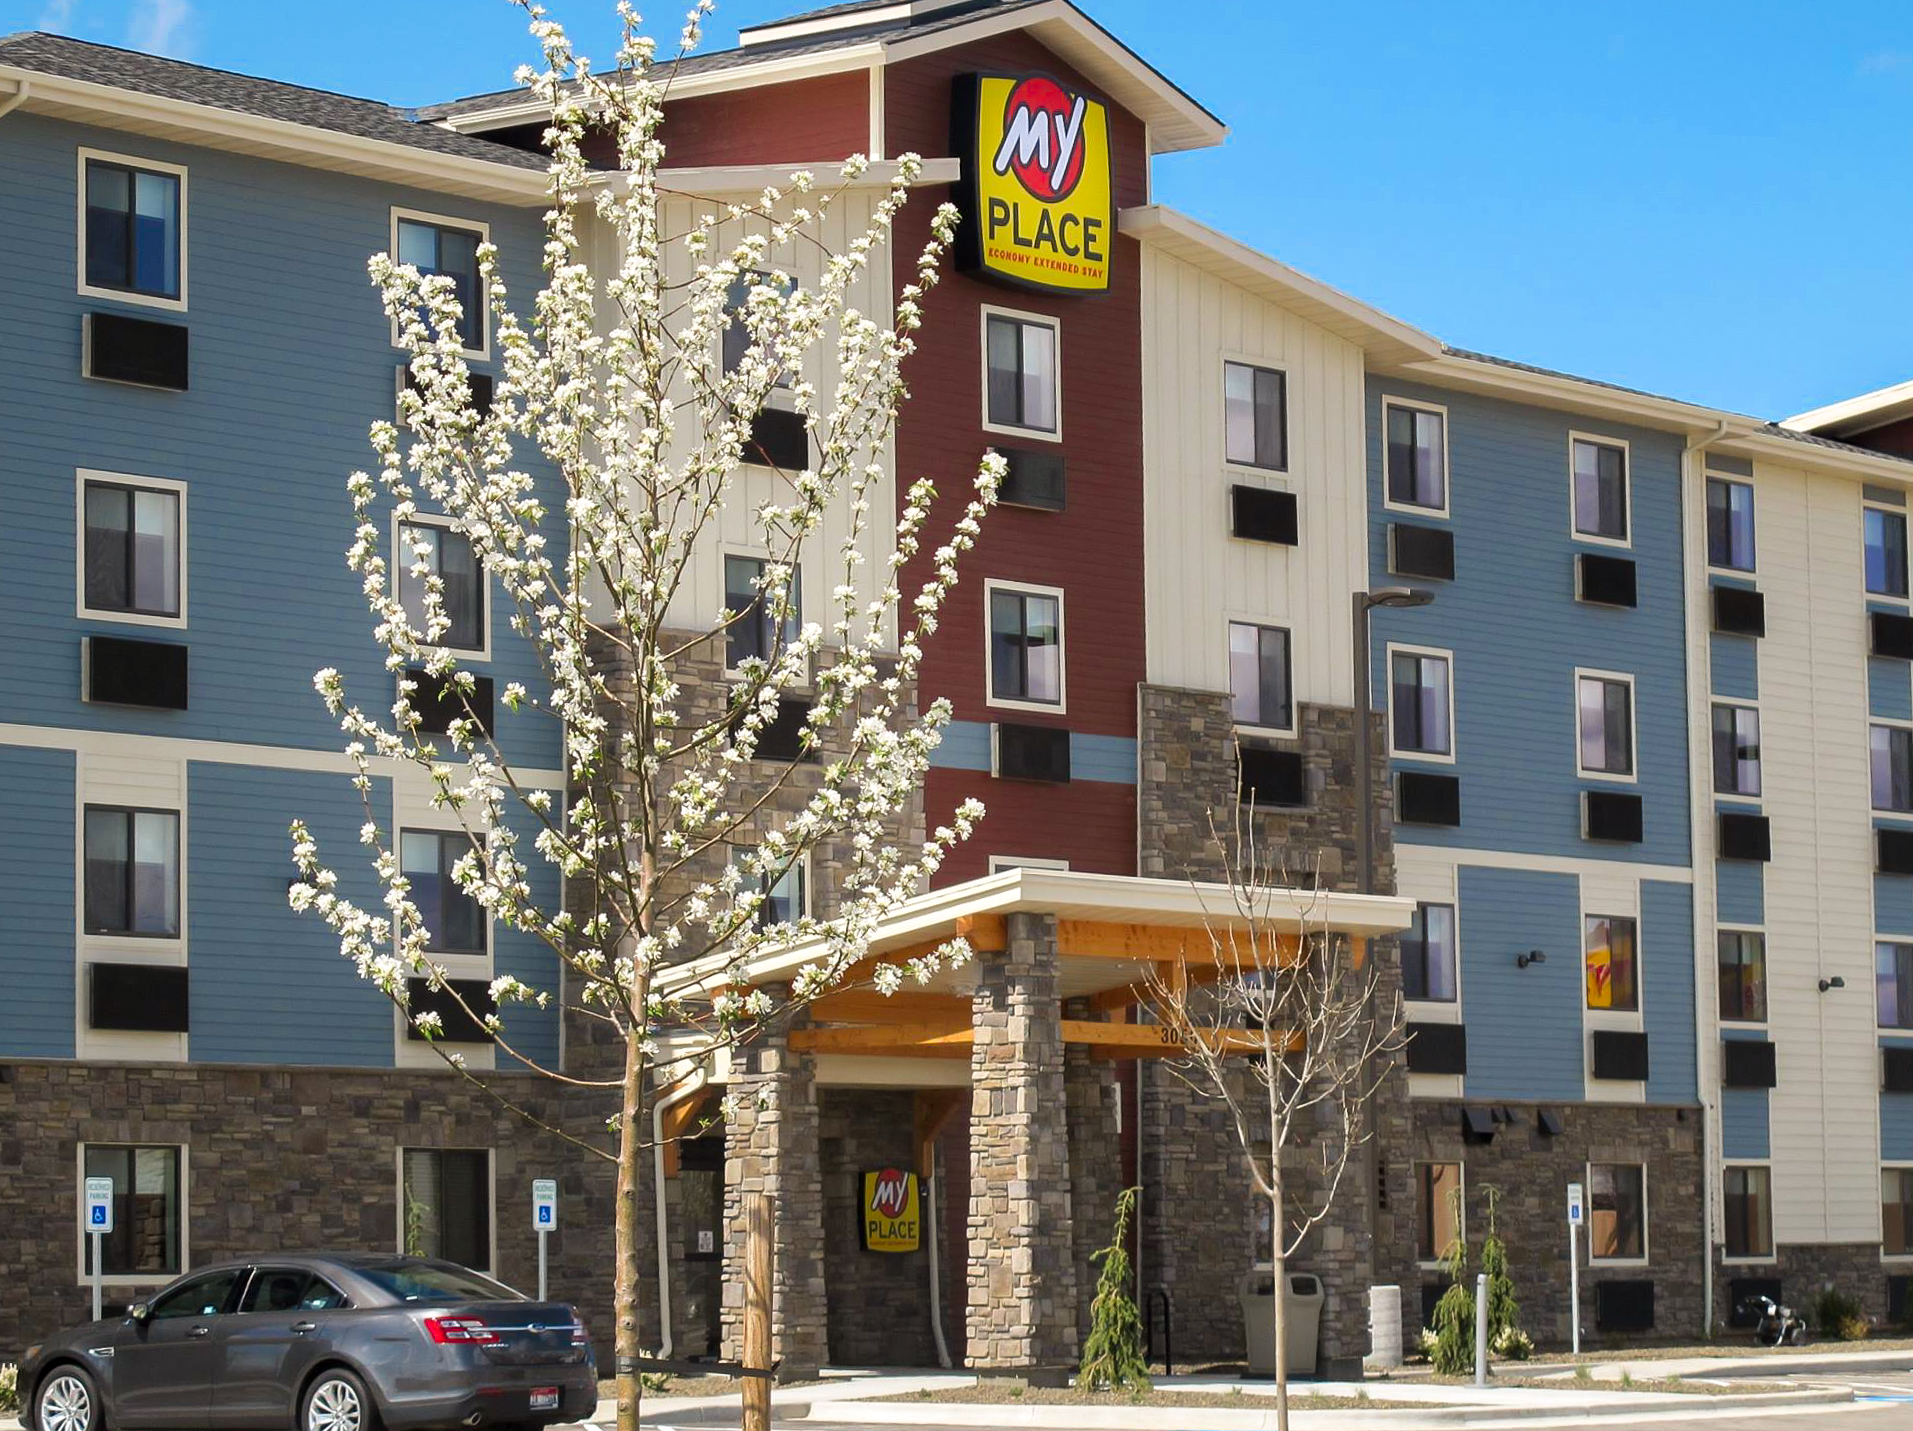 My Place Hotel Boise Meridian Id Is Now Open Hotels